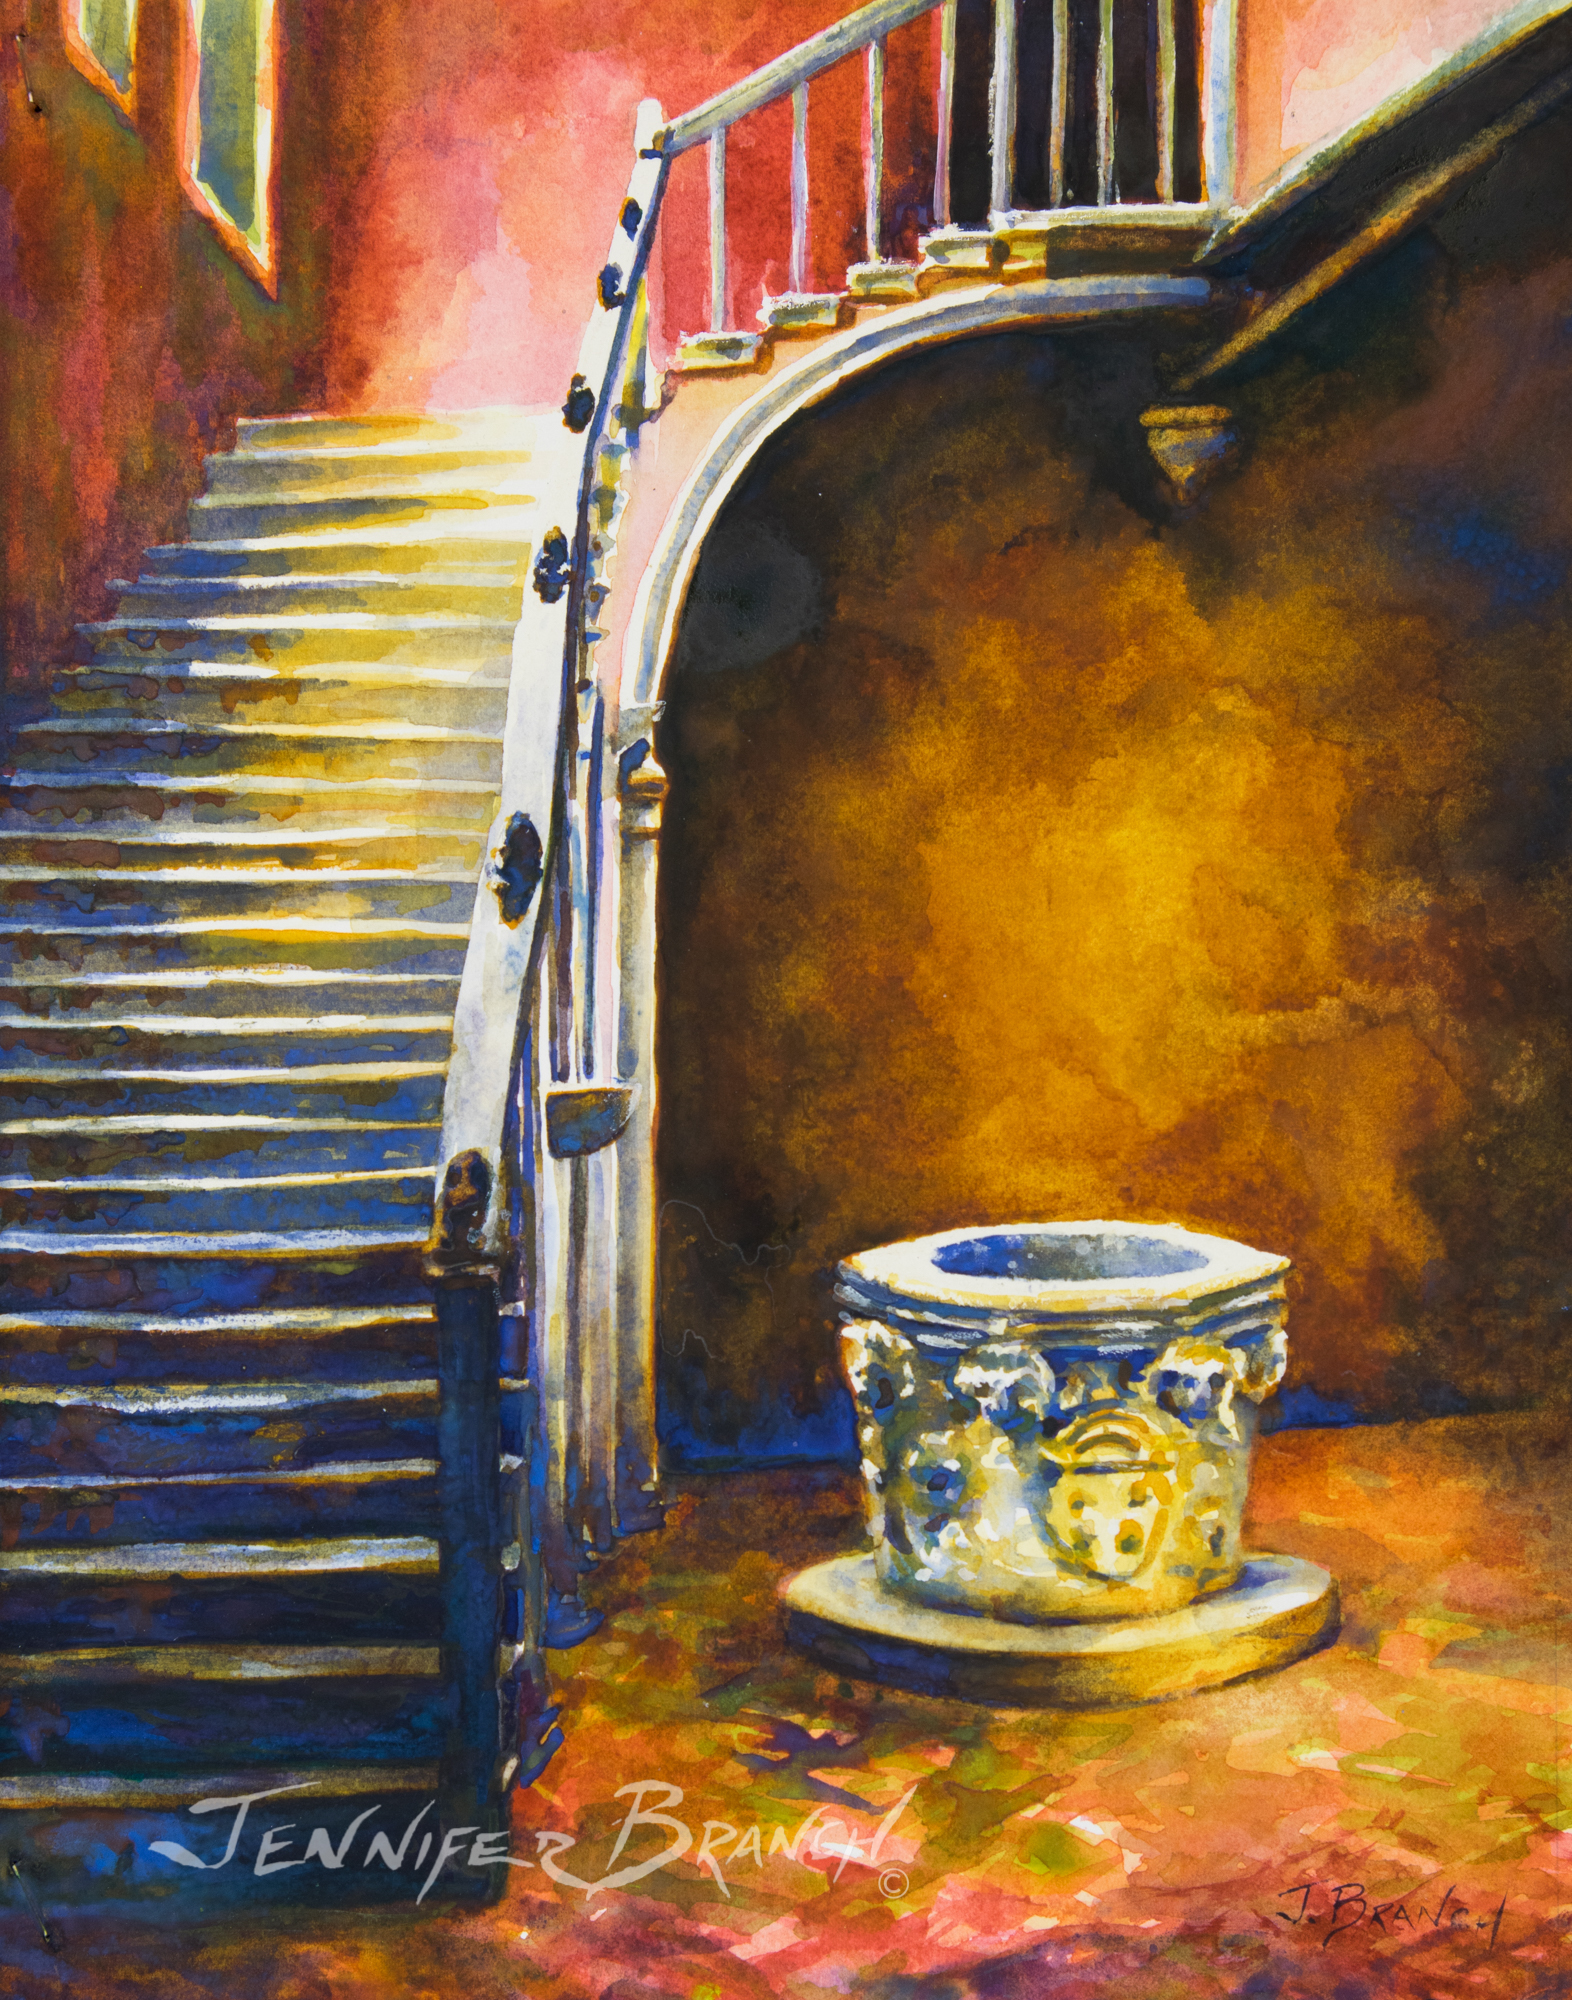 Venice-Stair-Painting by Jennifer Branch